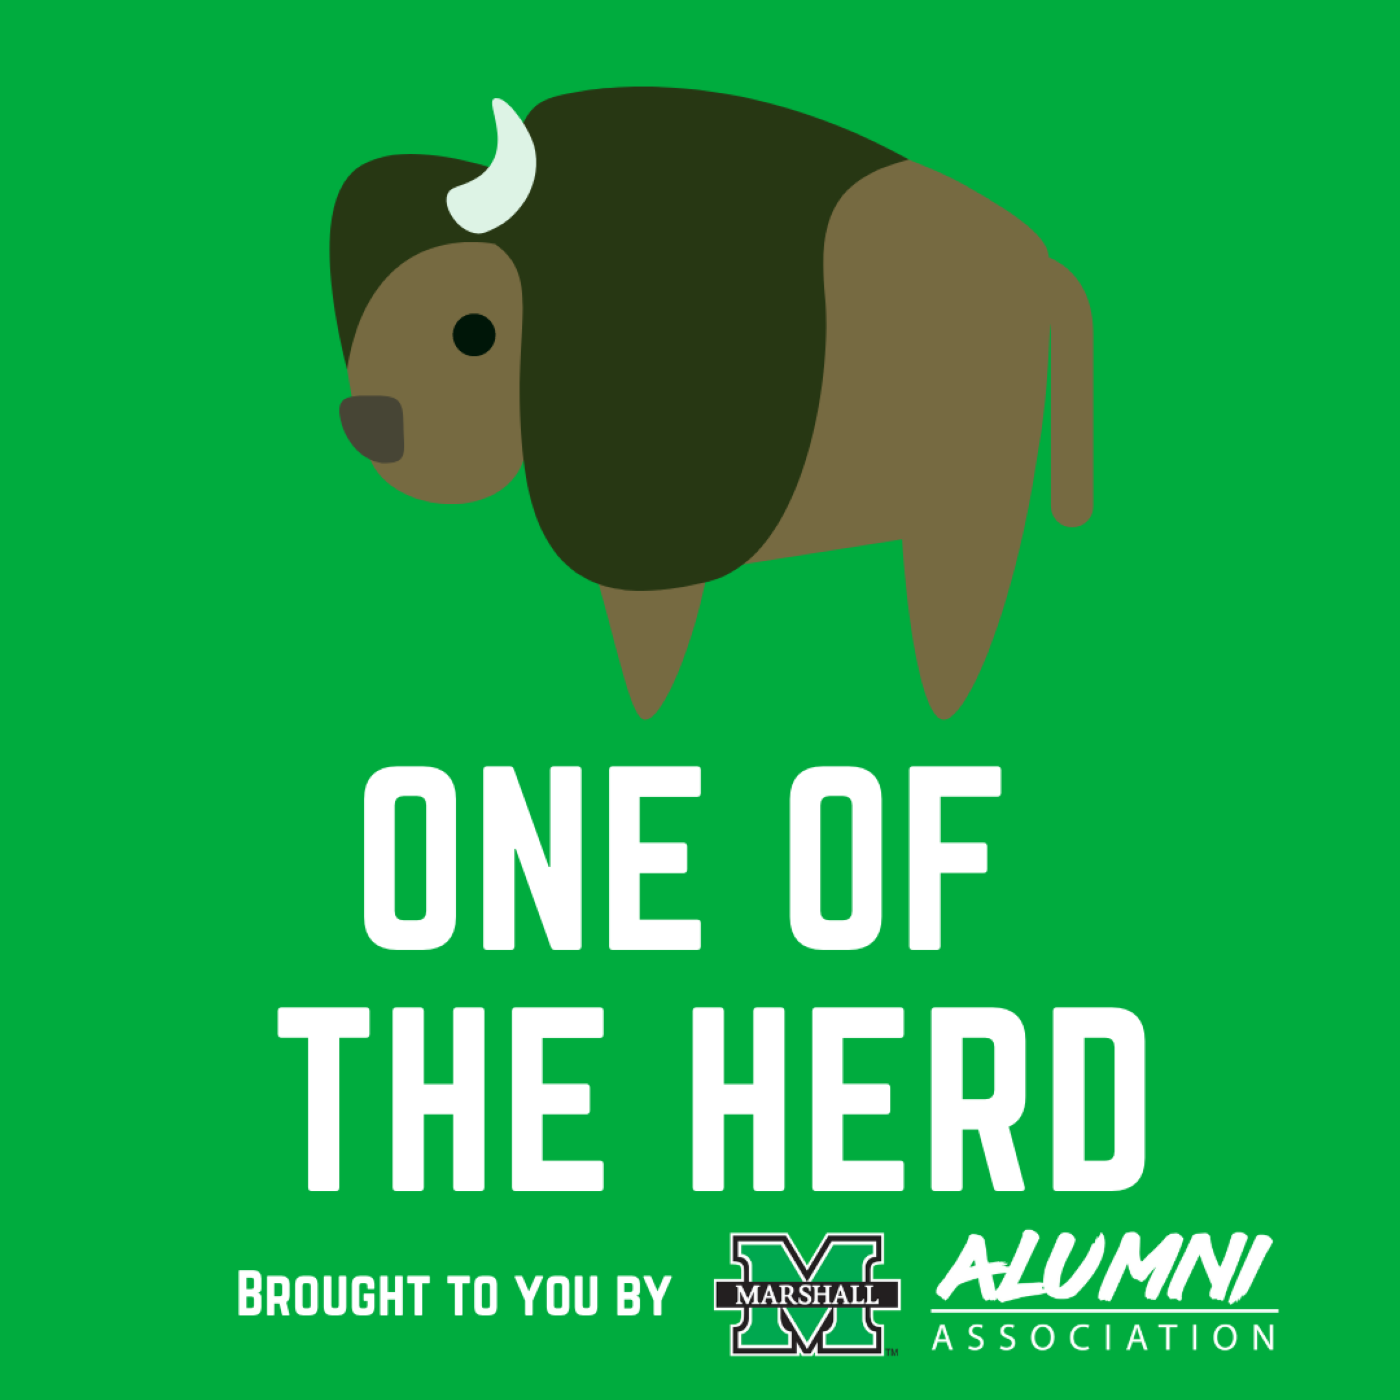 One of the Herd